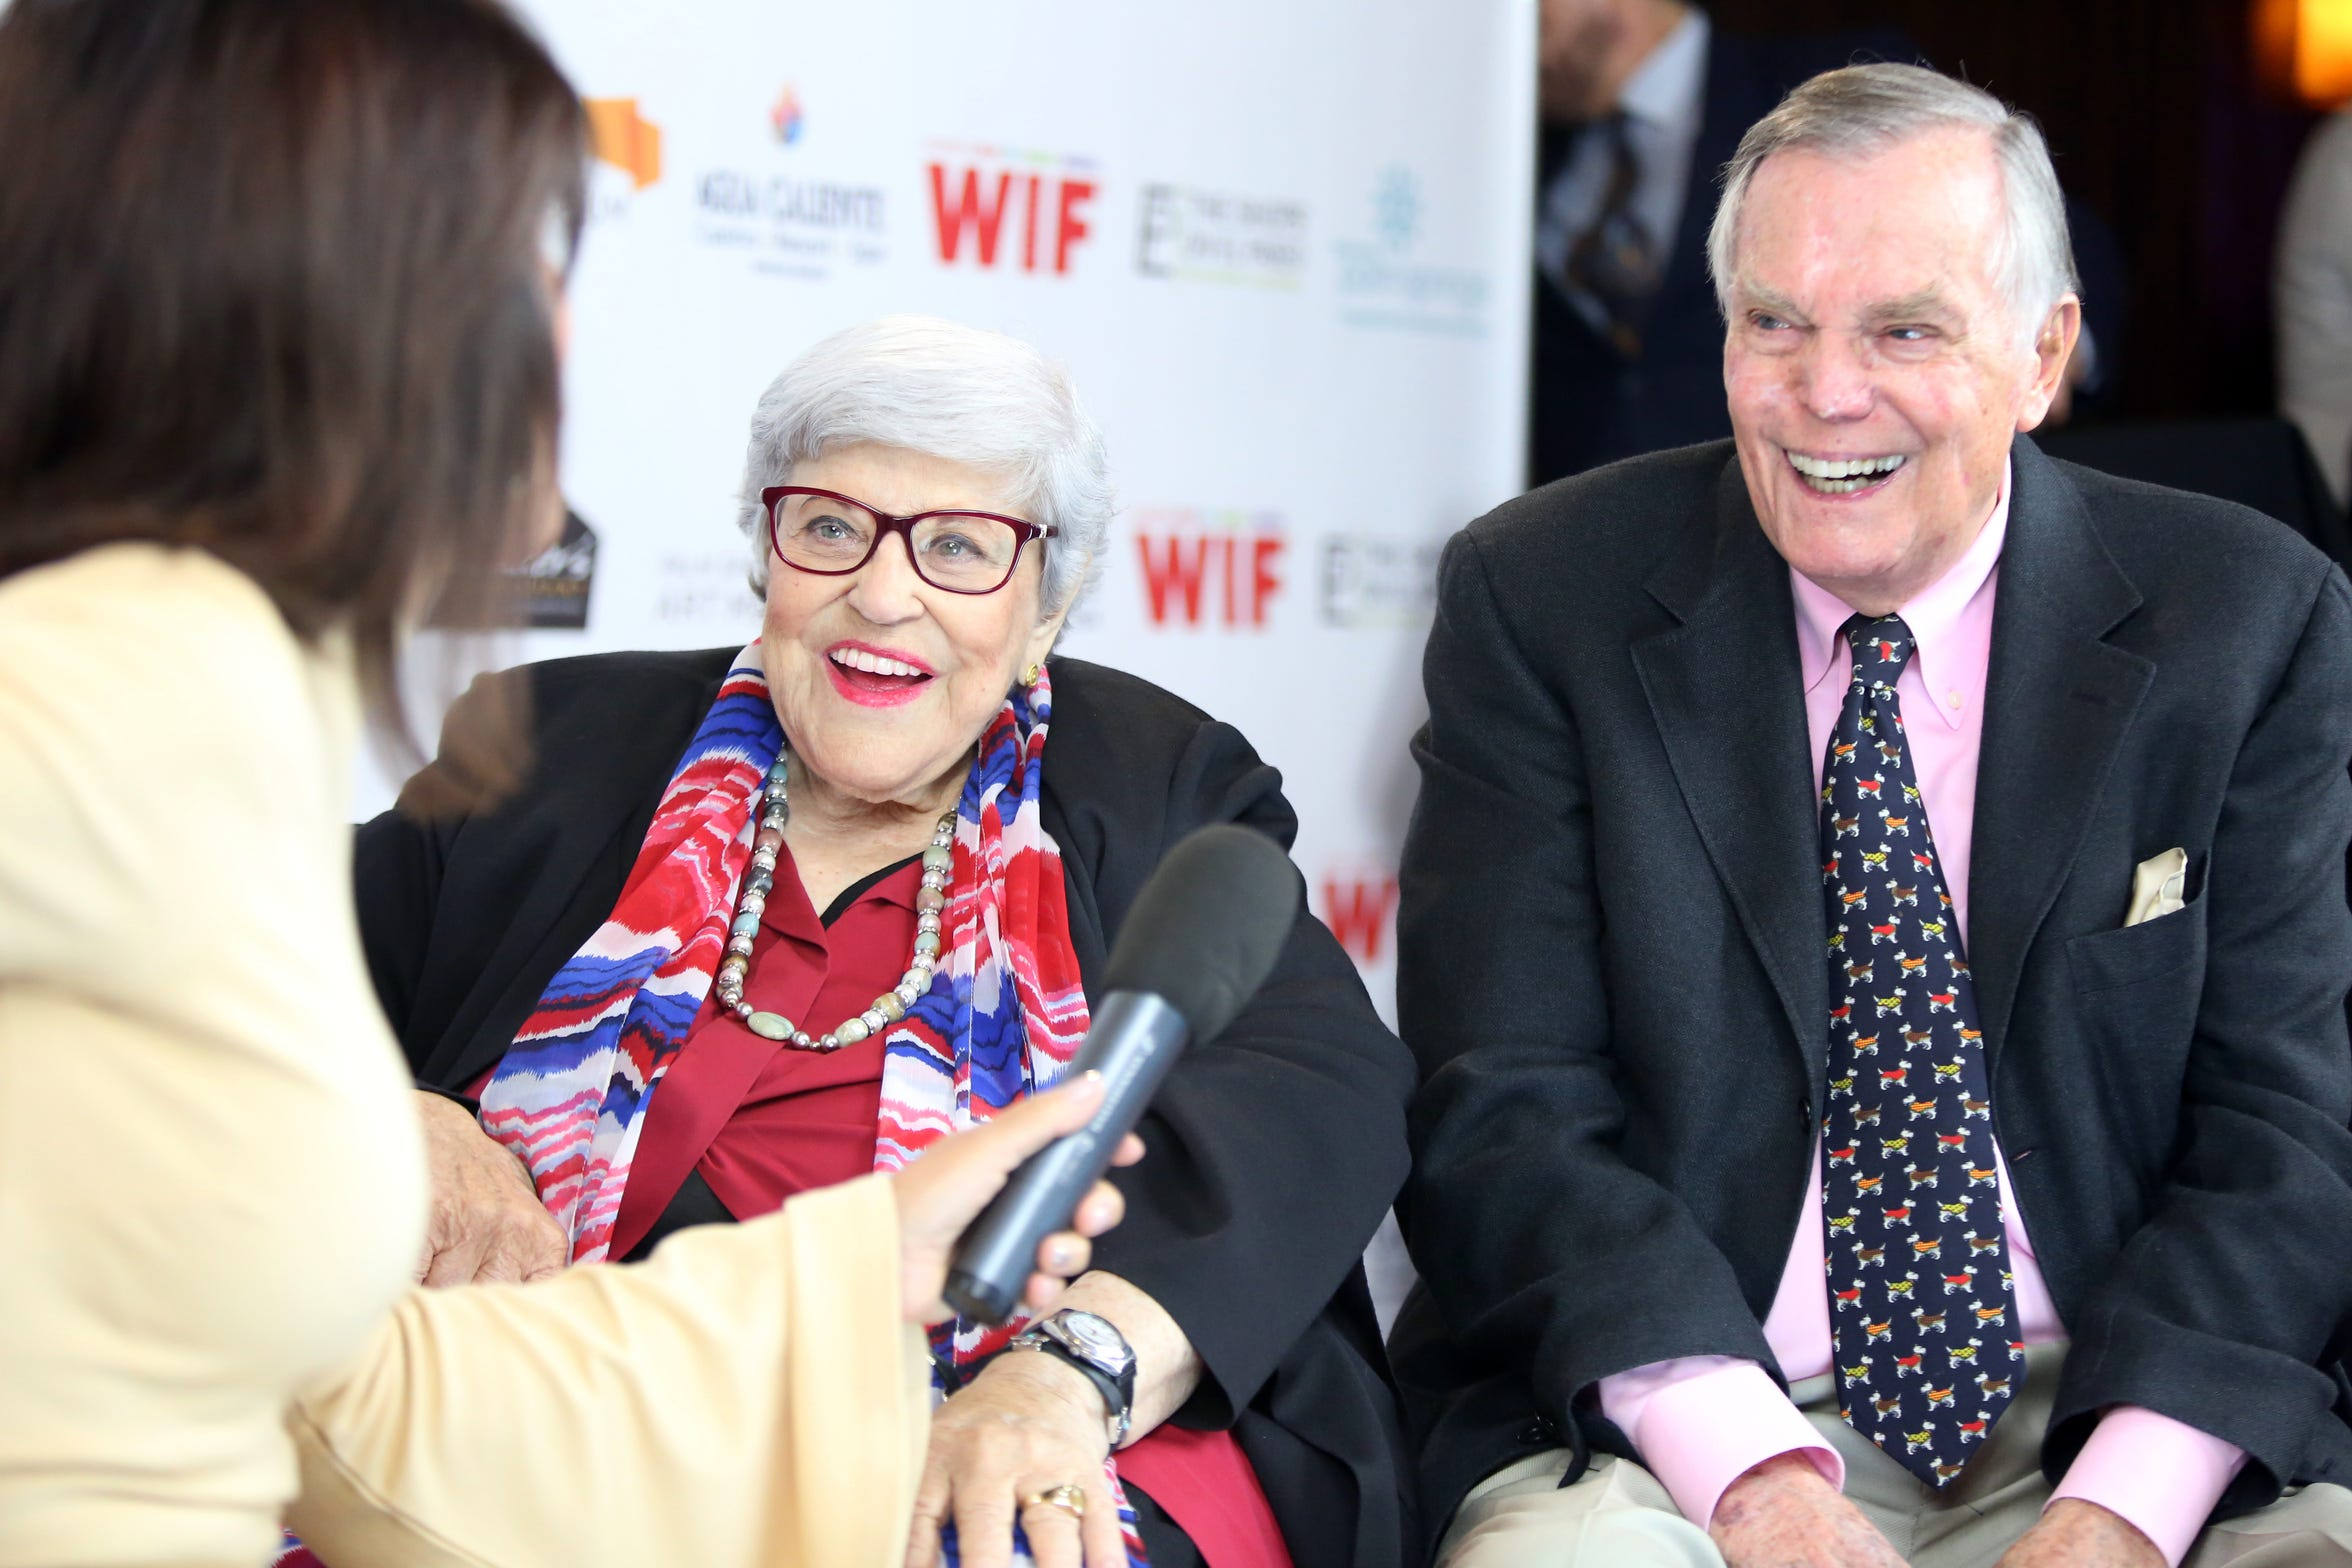 Lifetime Achievement Award recipient Kaye Ballard, center, and presenter Peter Marshall arrive on the red carpet for the 10th Annual Broken Glass Awards at the Agua Caliente Casino Resort Spa in Rancho Mirage. The awards were presented in November by the Palm Springs Women In Film and Television.